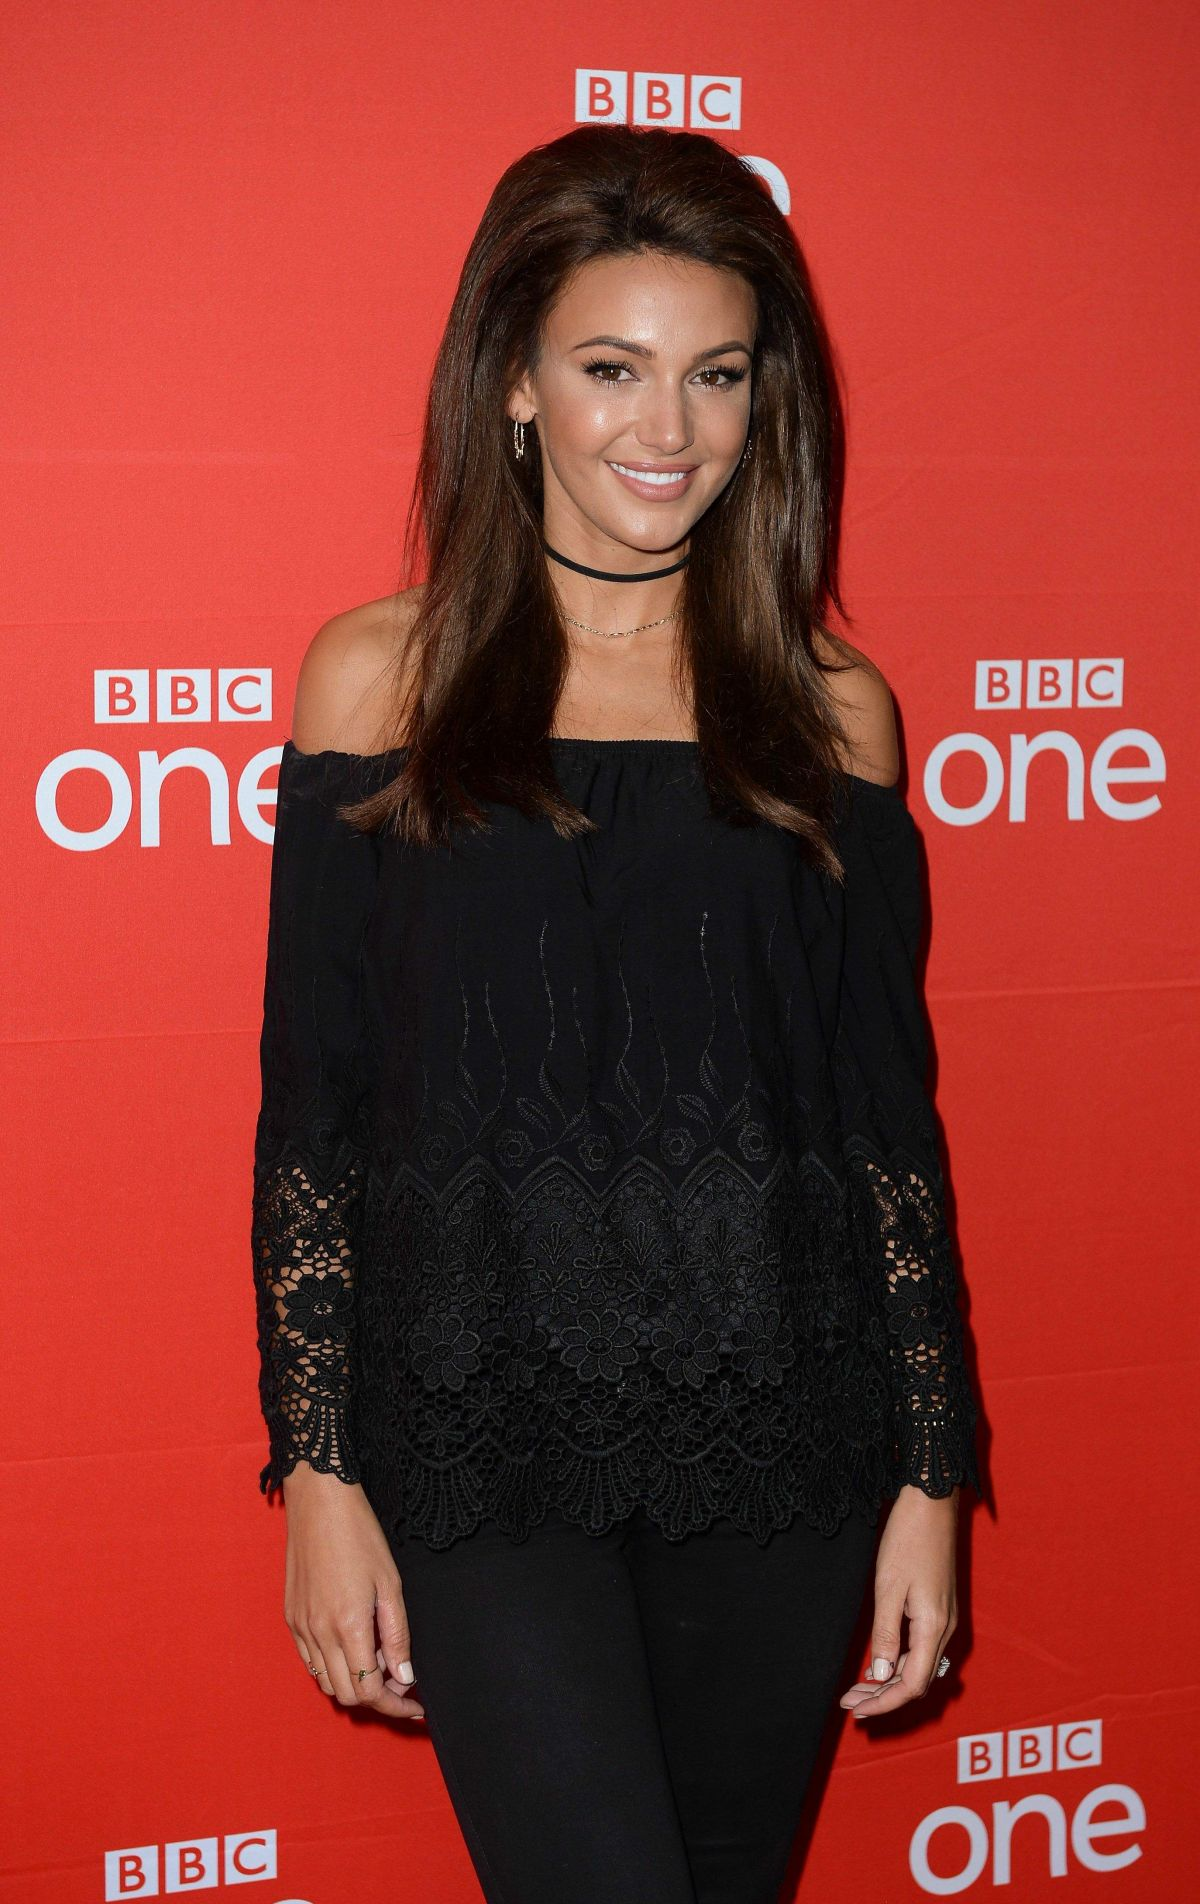 MICHELLE KEEGAN at '...